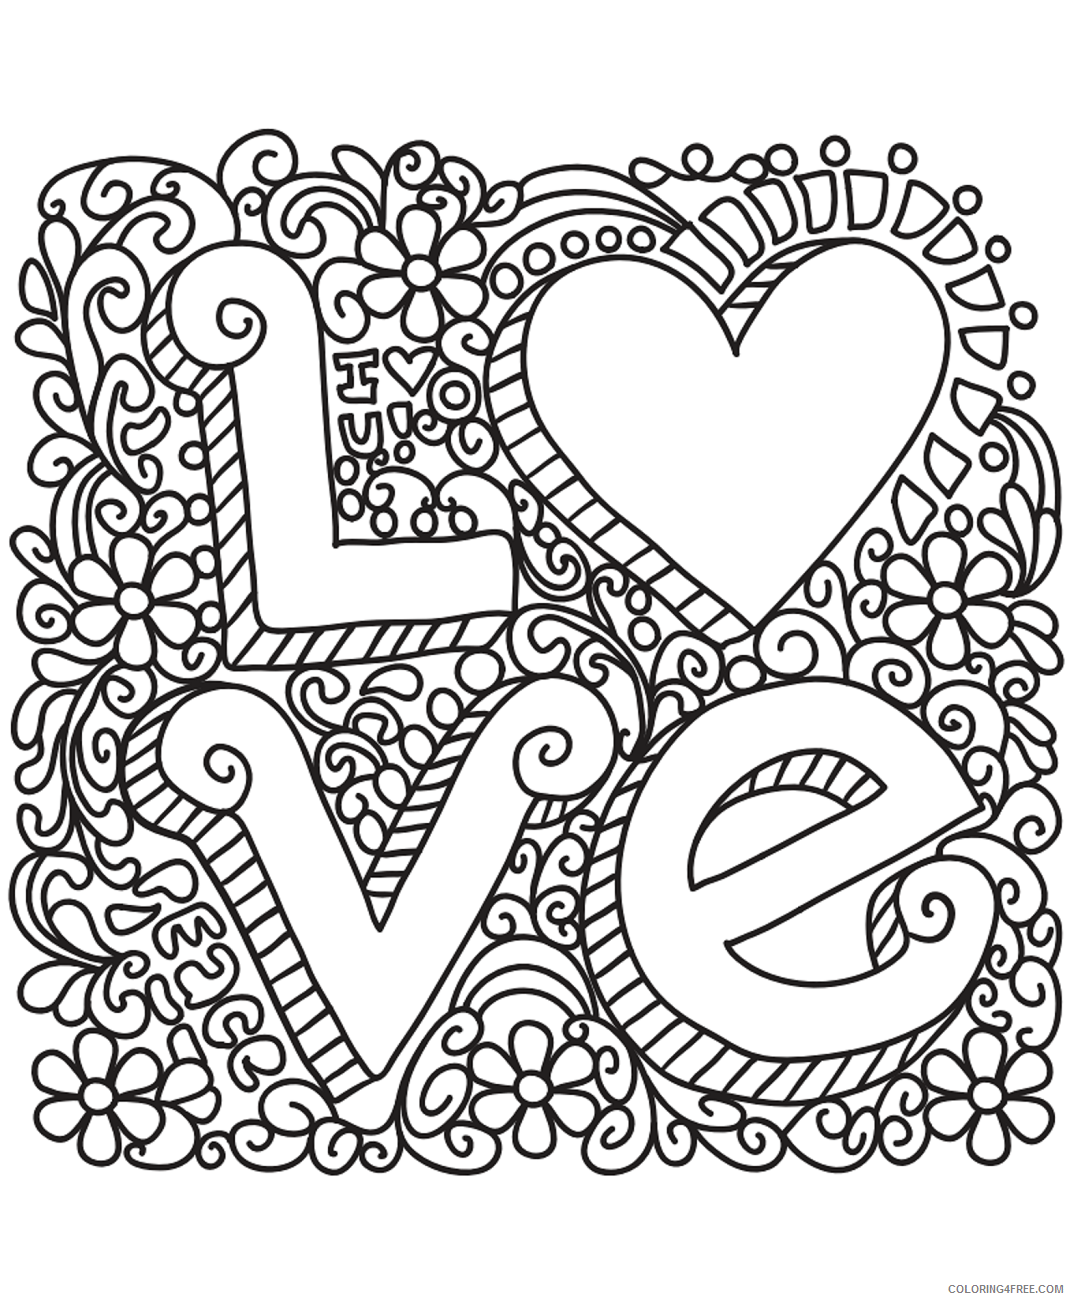 Love Coloring Pages love_doodle Printable 2021 3916 Coloring4free